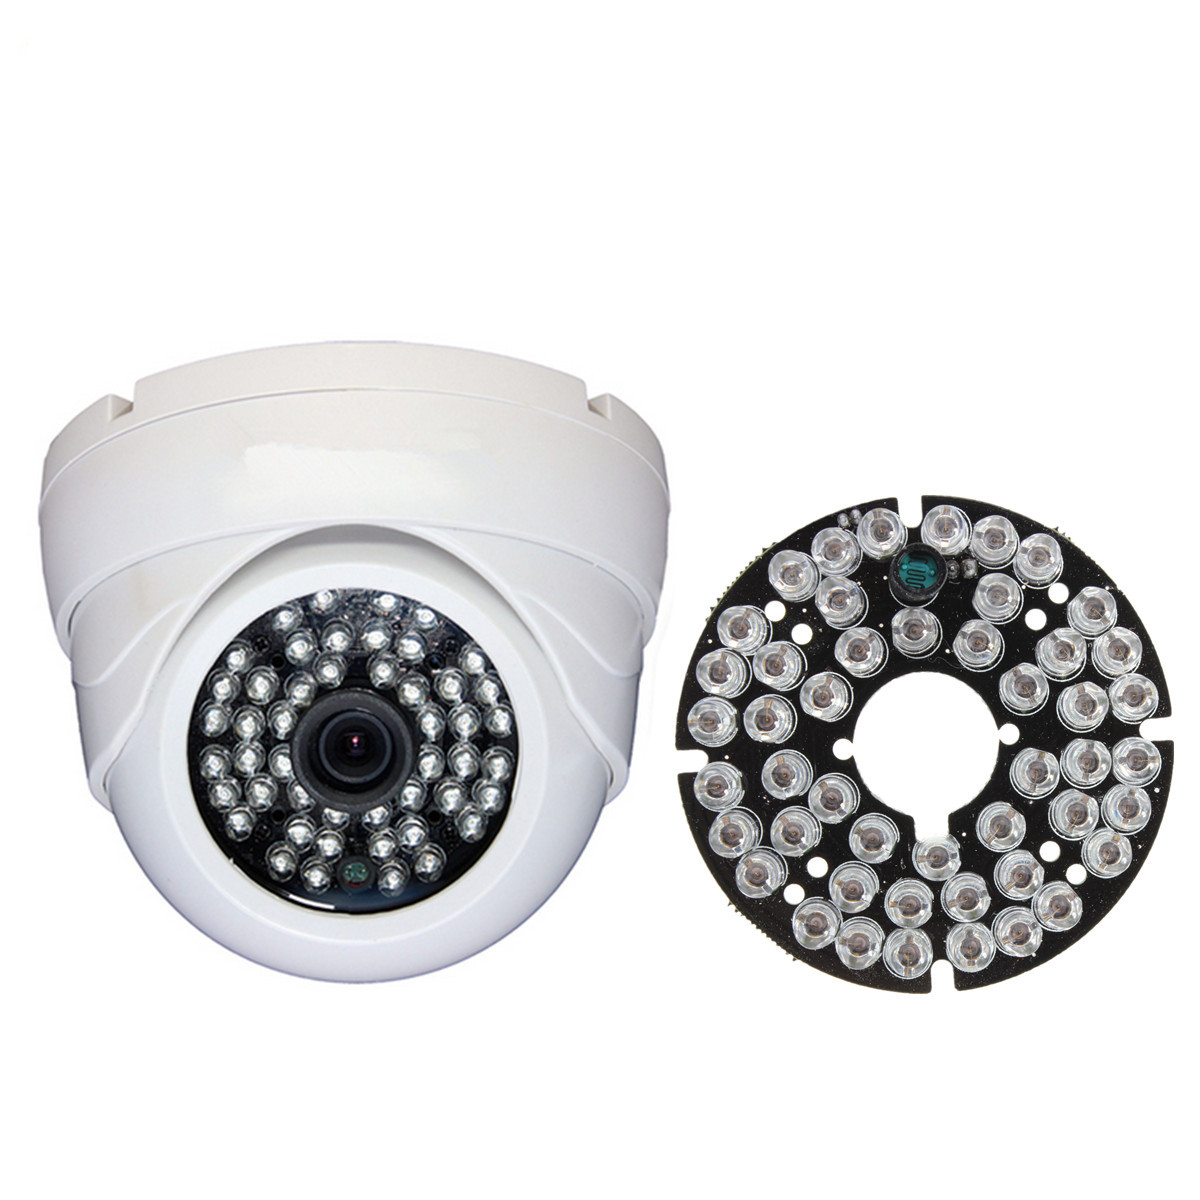 48 LED IR Infrared Illuminator-Bulb Module Board For CCTV Security Camera Replace CCD Camera LED Board  prevention48 LED IR Infrared Illuminator-Bulb Module Board For CCTV Security Camera Replace CCD Camera LED Board  prevention